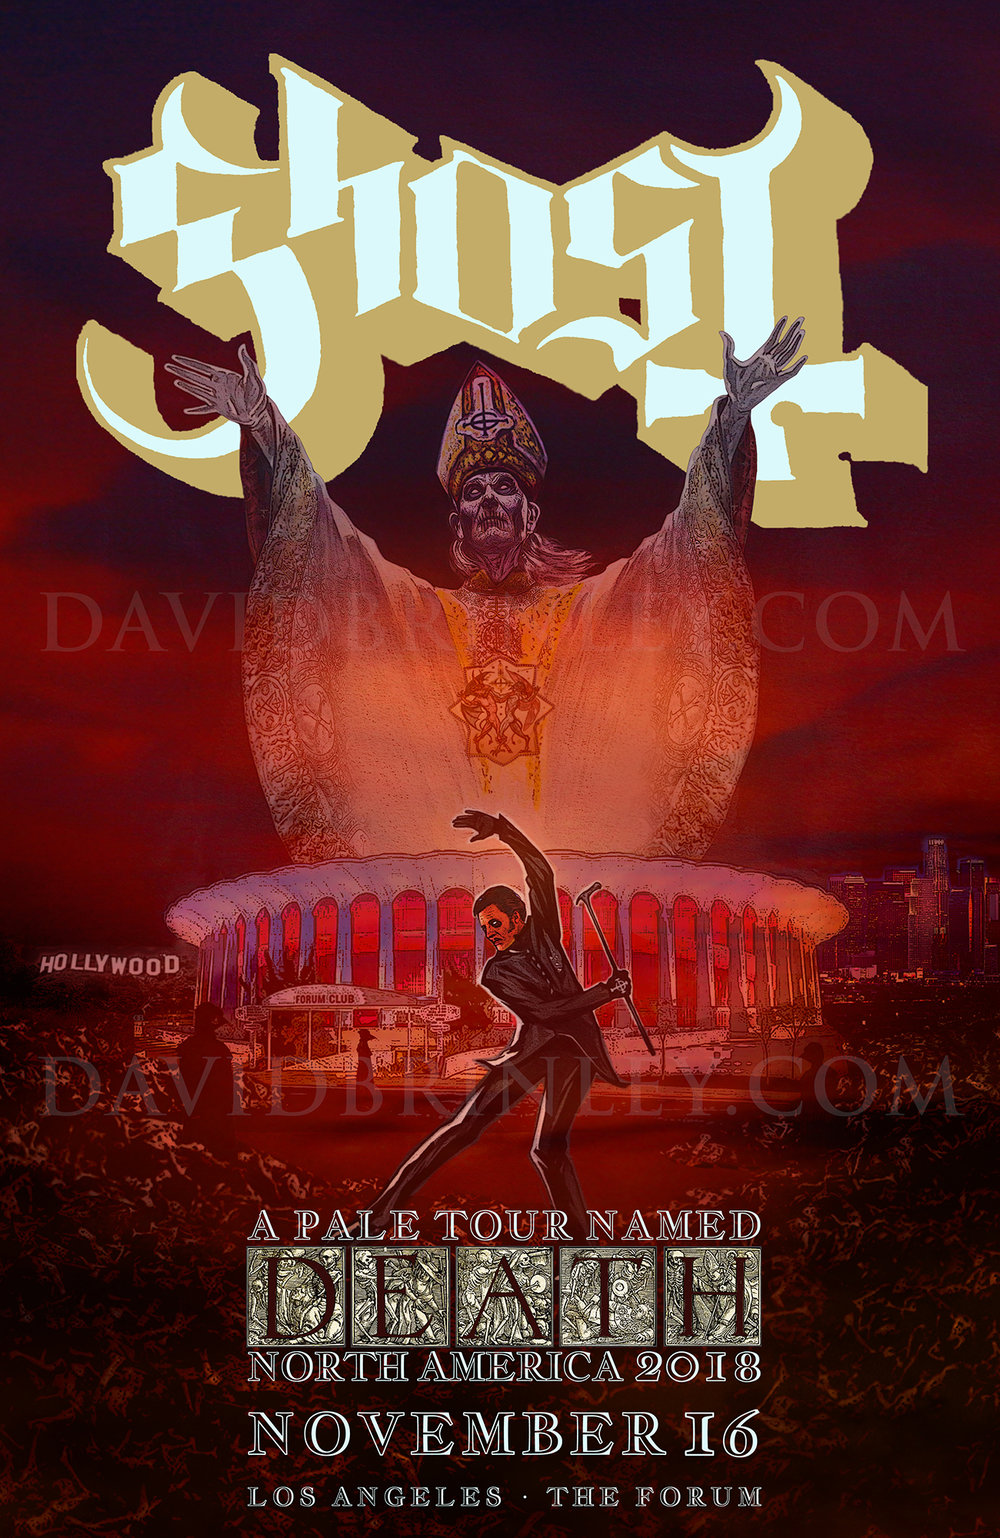 GHOST | Los Angeles Forum | November 16, 2018   A Pale Tour Named Death Official poster  David M. Brinley | Illustrator Designer  Acrylic and Digital